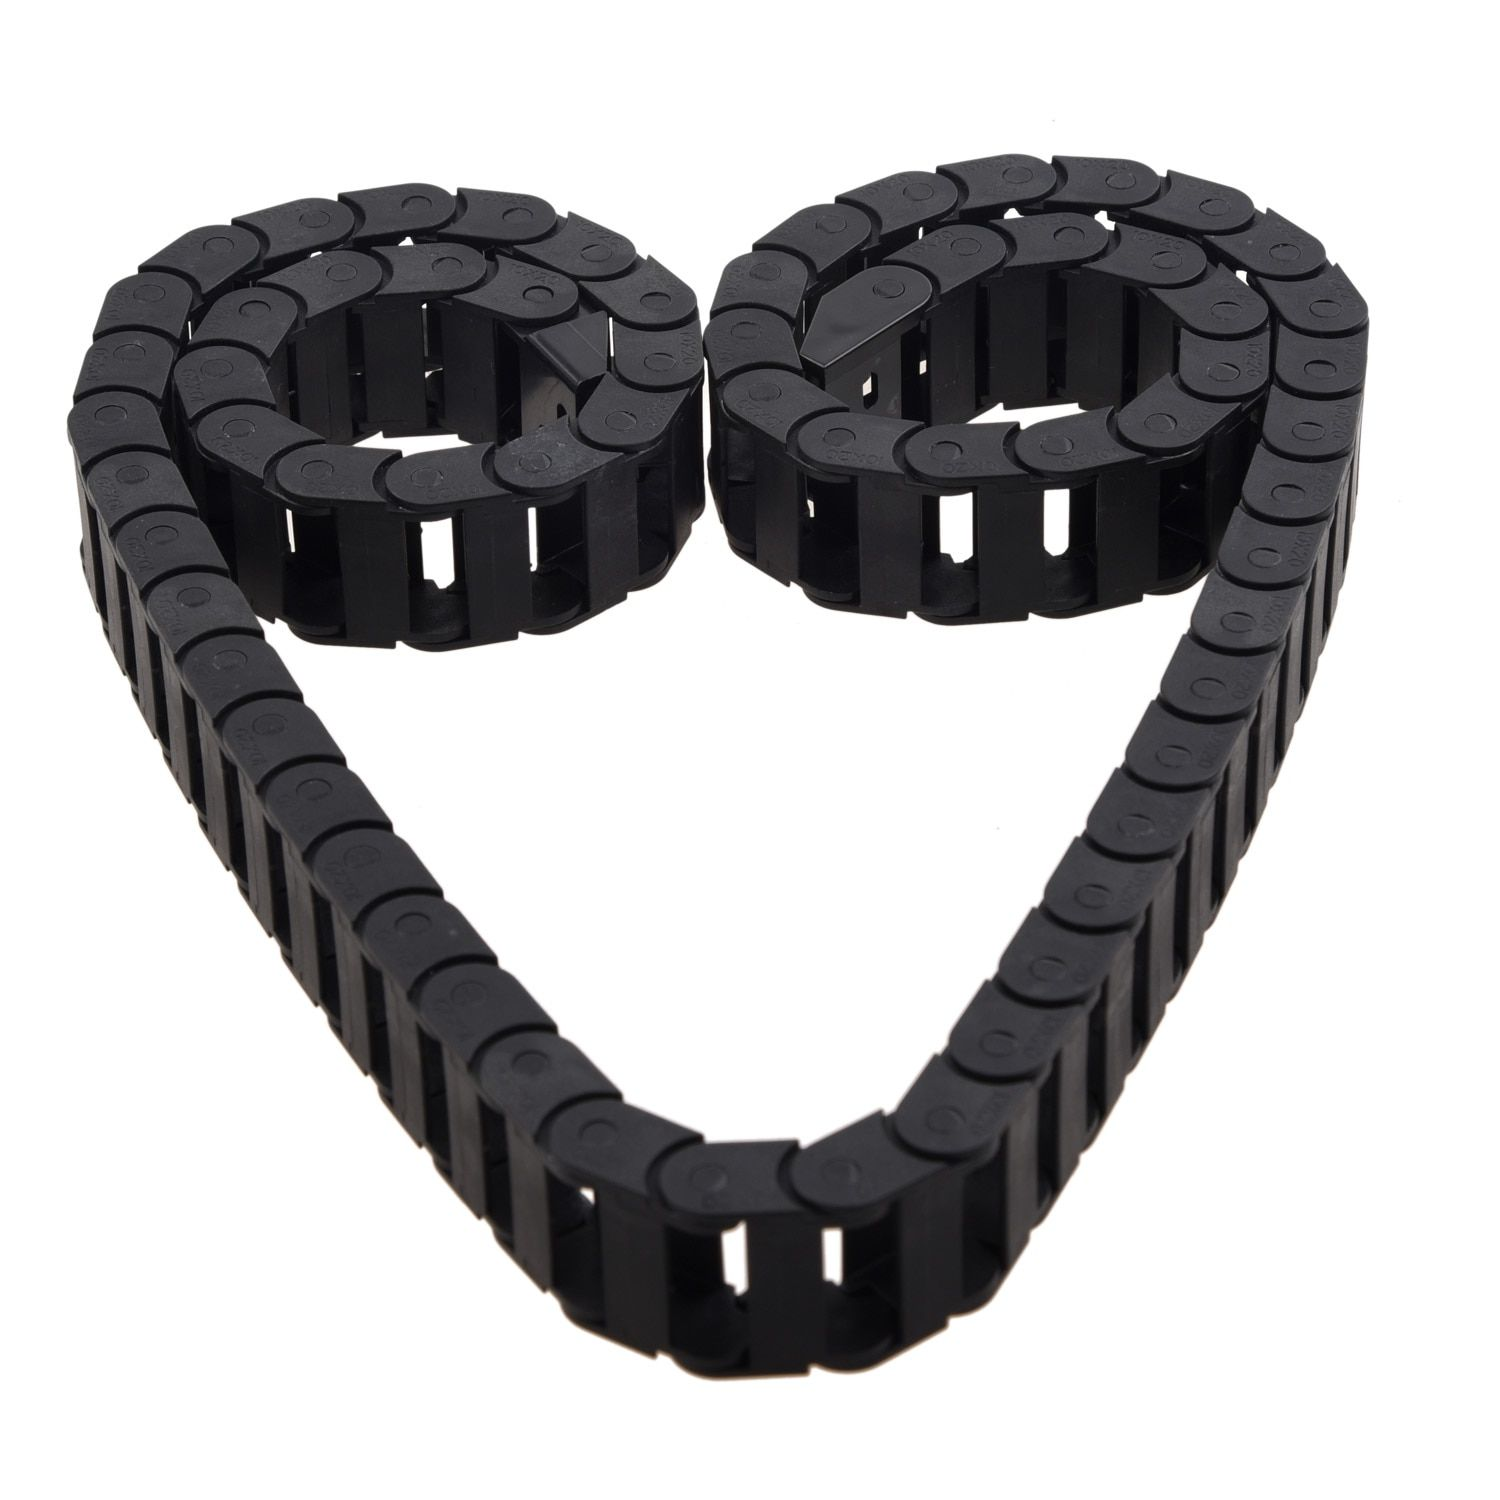 Transmission Chains 10 x 20mm 1M Open On Both Side Plastic Towline Cable Drag Chain